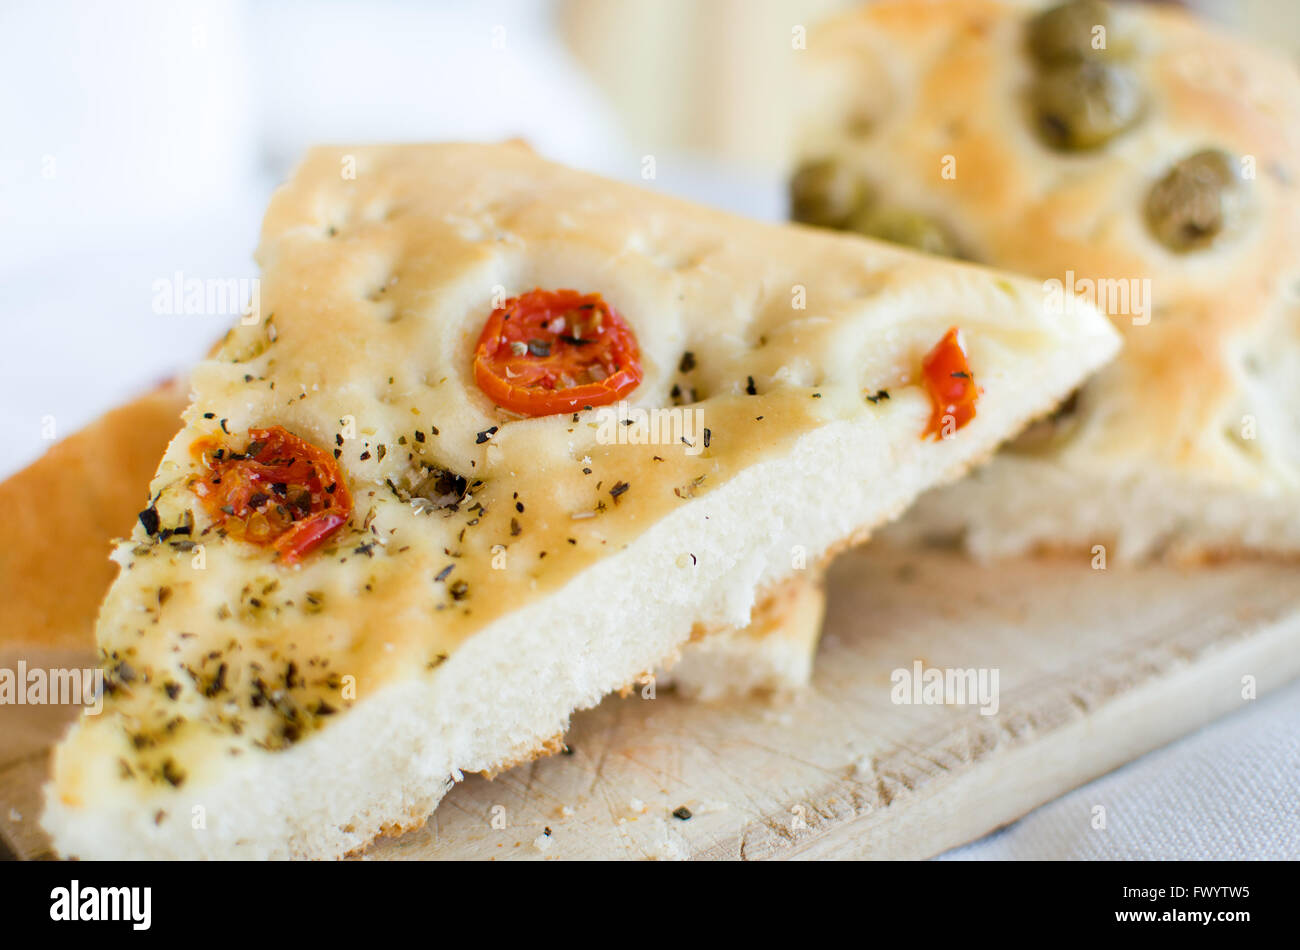 flatbread italy focaccia tomatoes olives flat oven baked Italian bread genovese ligure Stock Photo